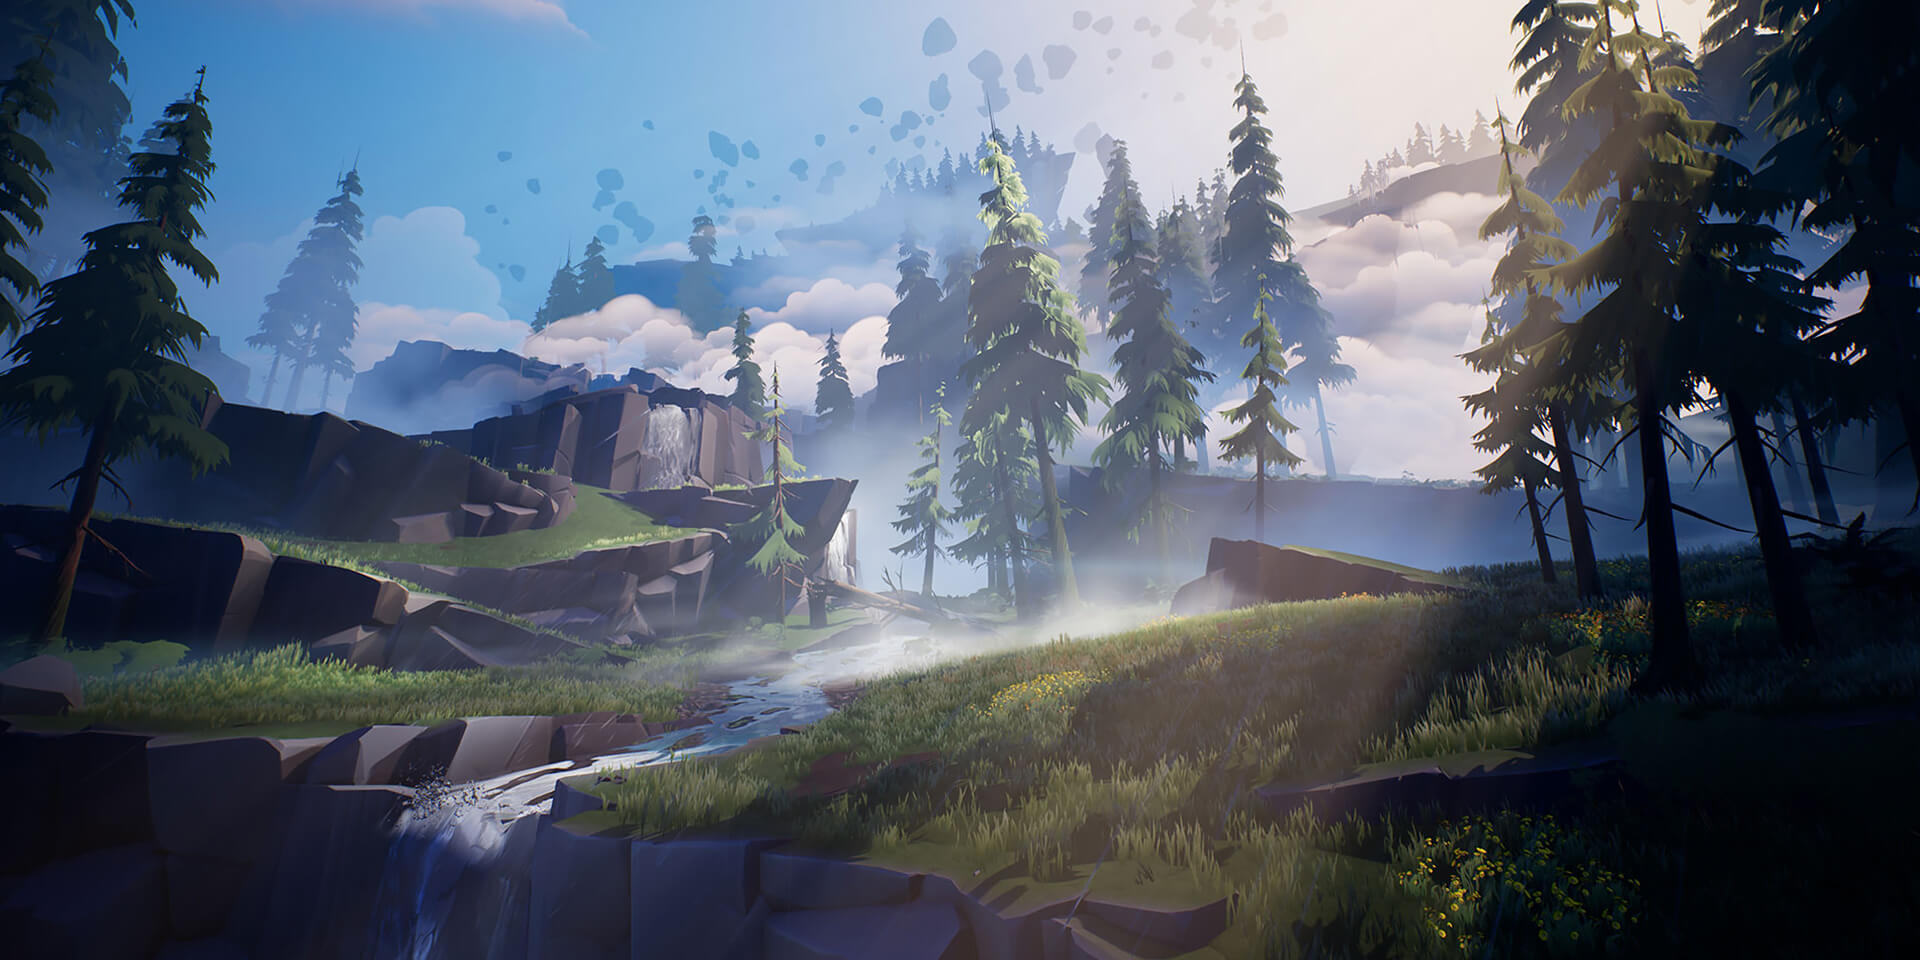 Announcing Unreal Dev Days 2019